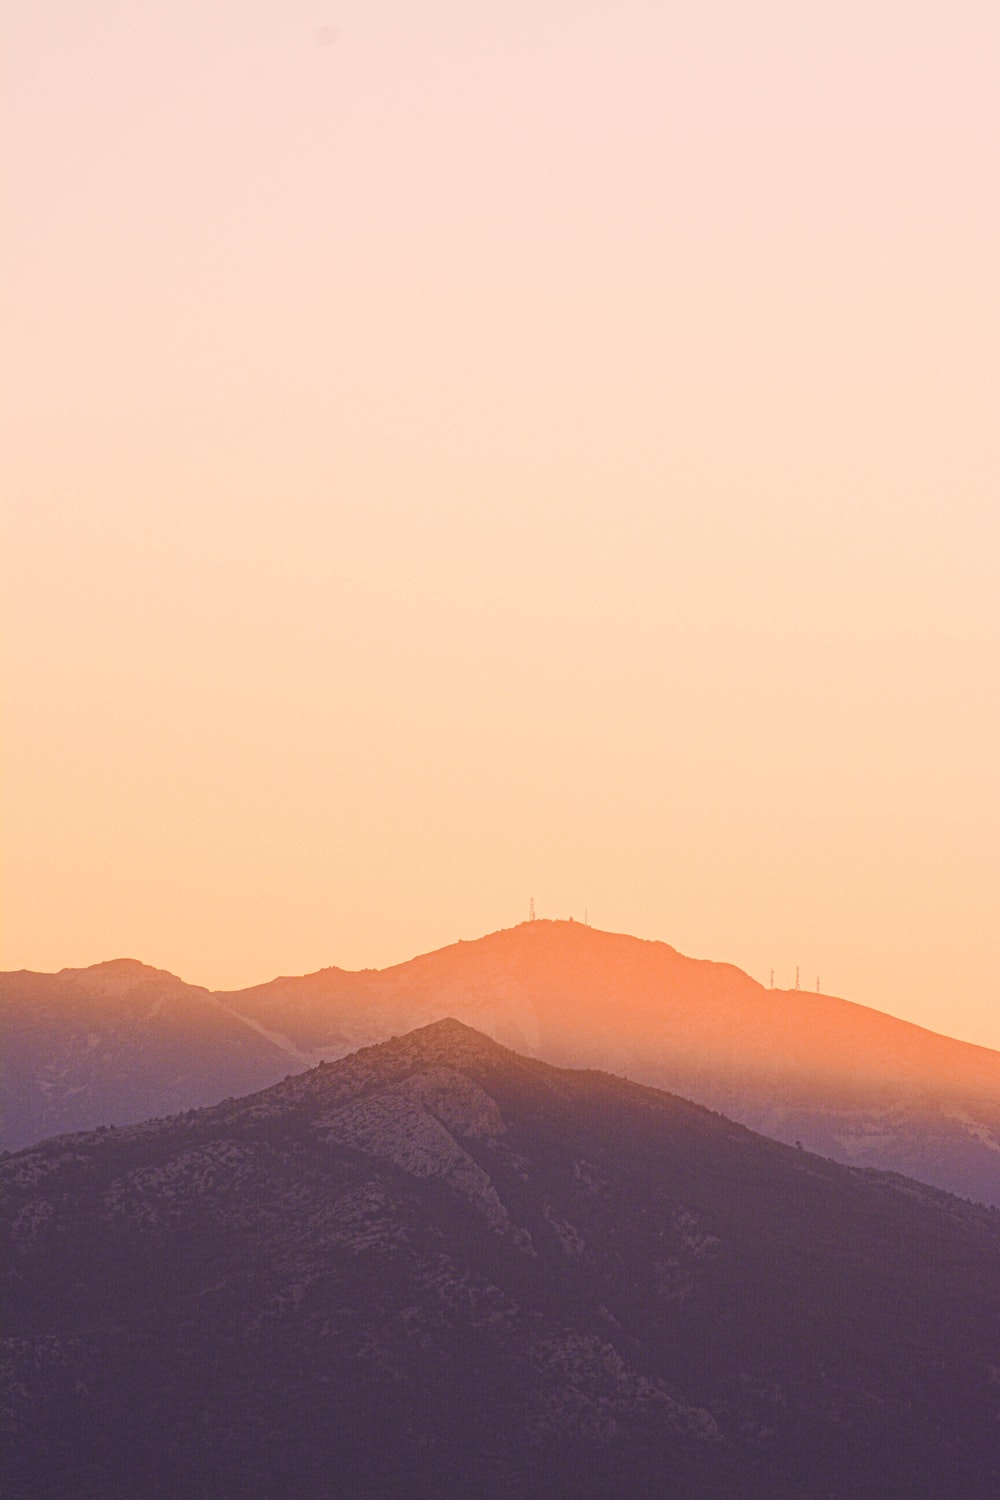 silhouette of mountains during sunset